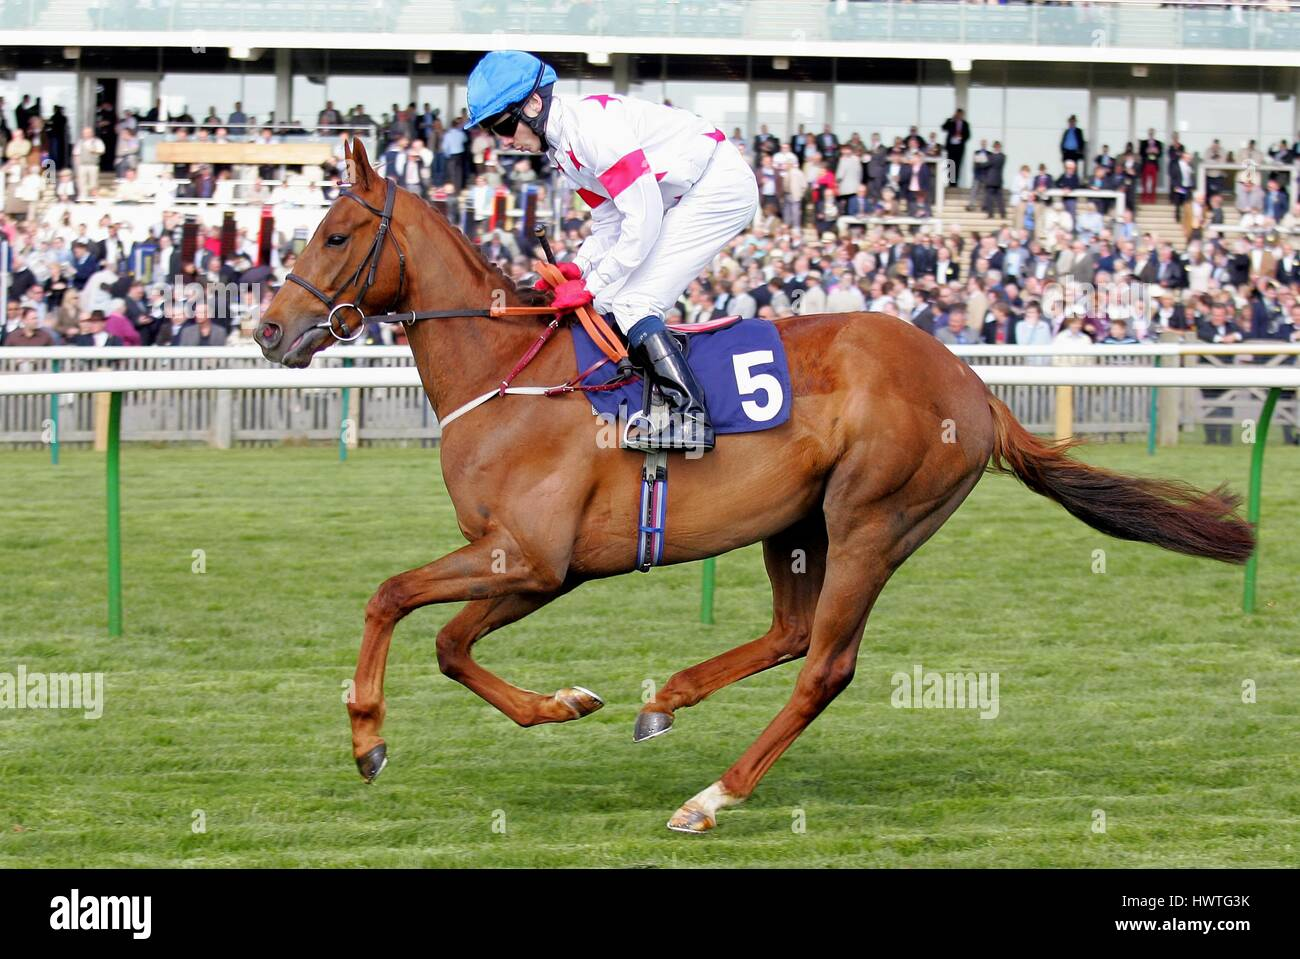 EDDIE JOCK RIDDEN BY JAMIE SPENCER ROWLEY MILE COURSE NEWMARKET ENGLAND 18 April 2007 - Stock Image